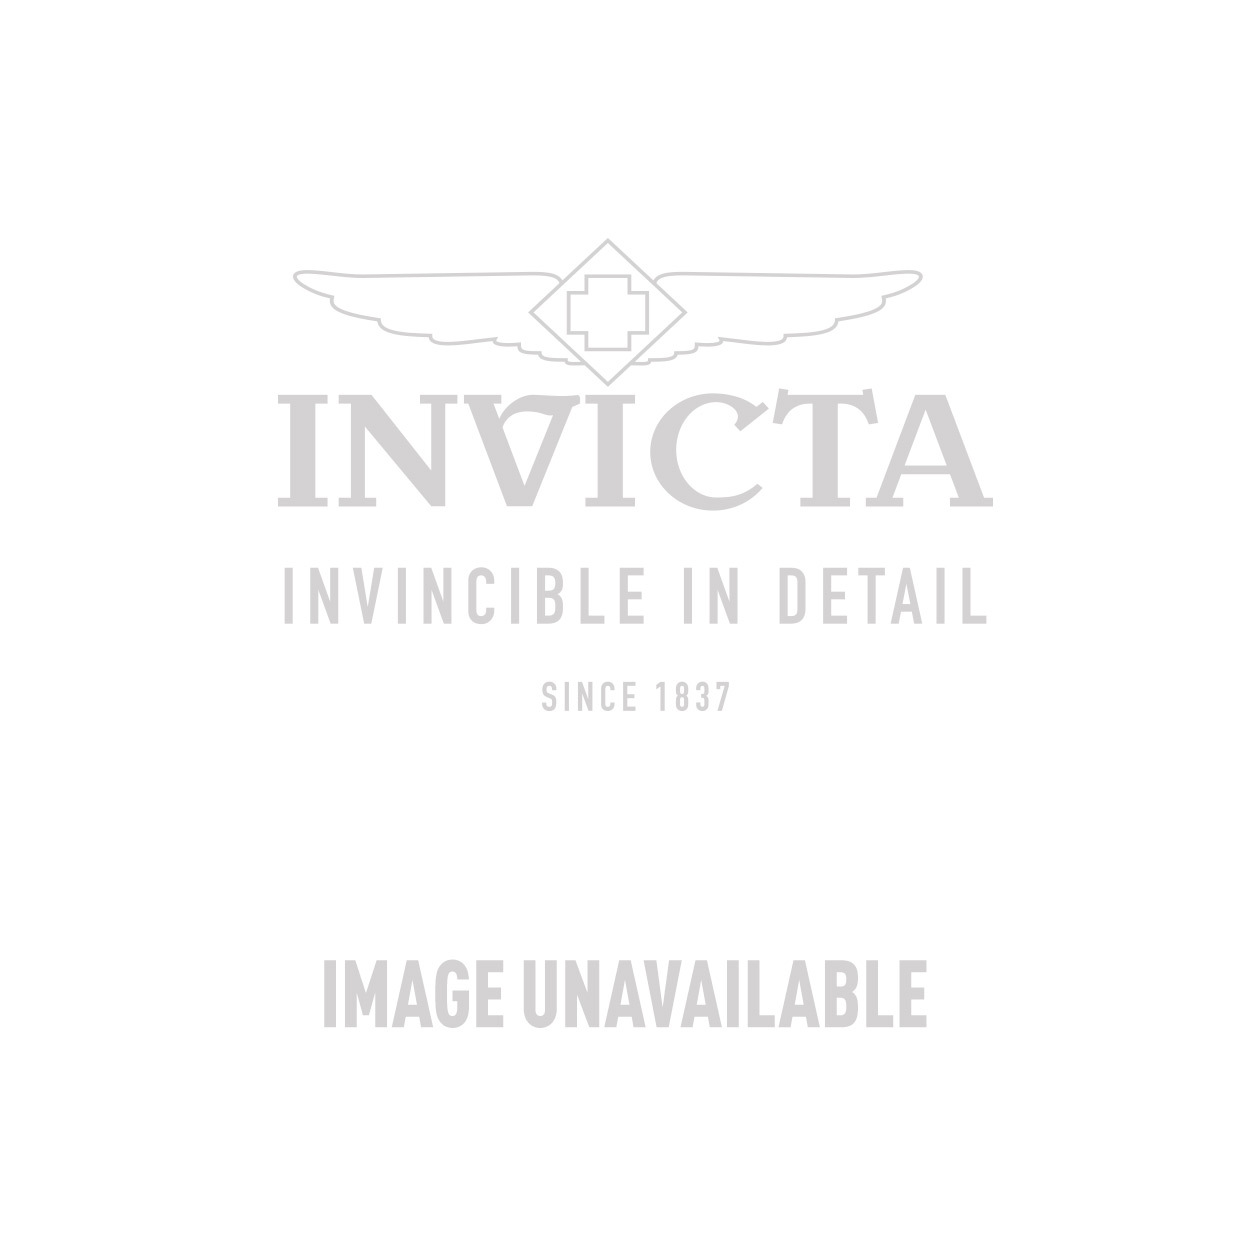 Invicta Pro Diver Swiss Movement Quartz Watch - Gold case with Gold tone Stainless Steel band - Model 80064